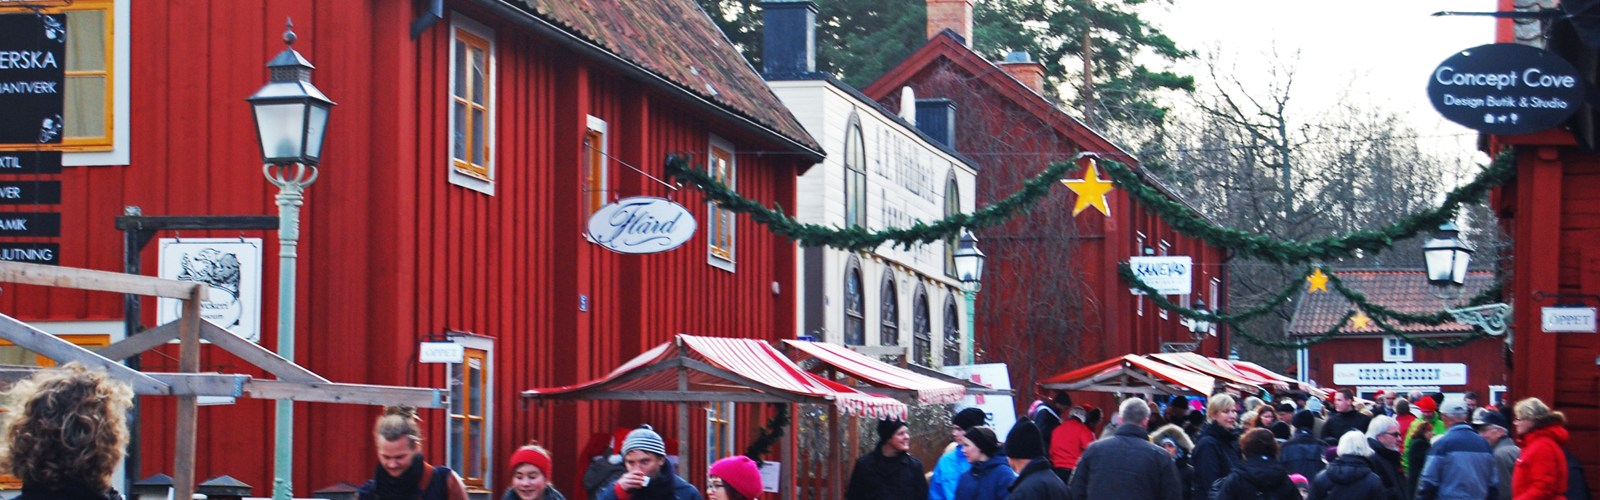 shoppers on high street in Swedish town